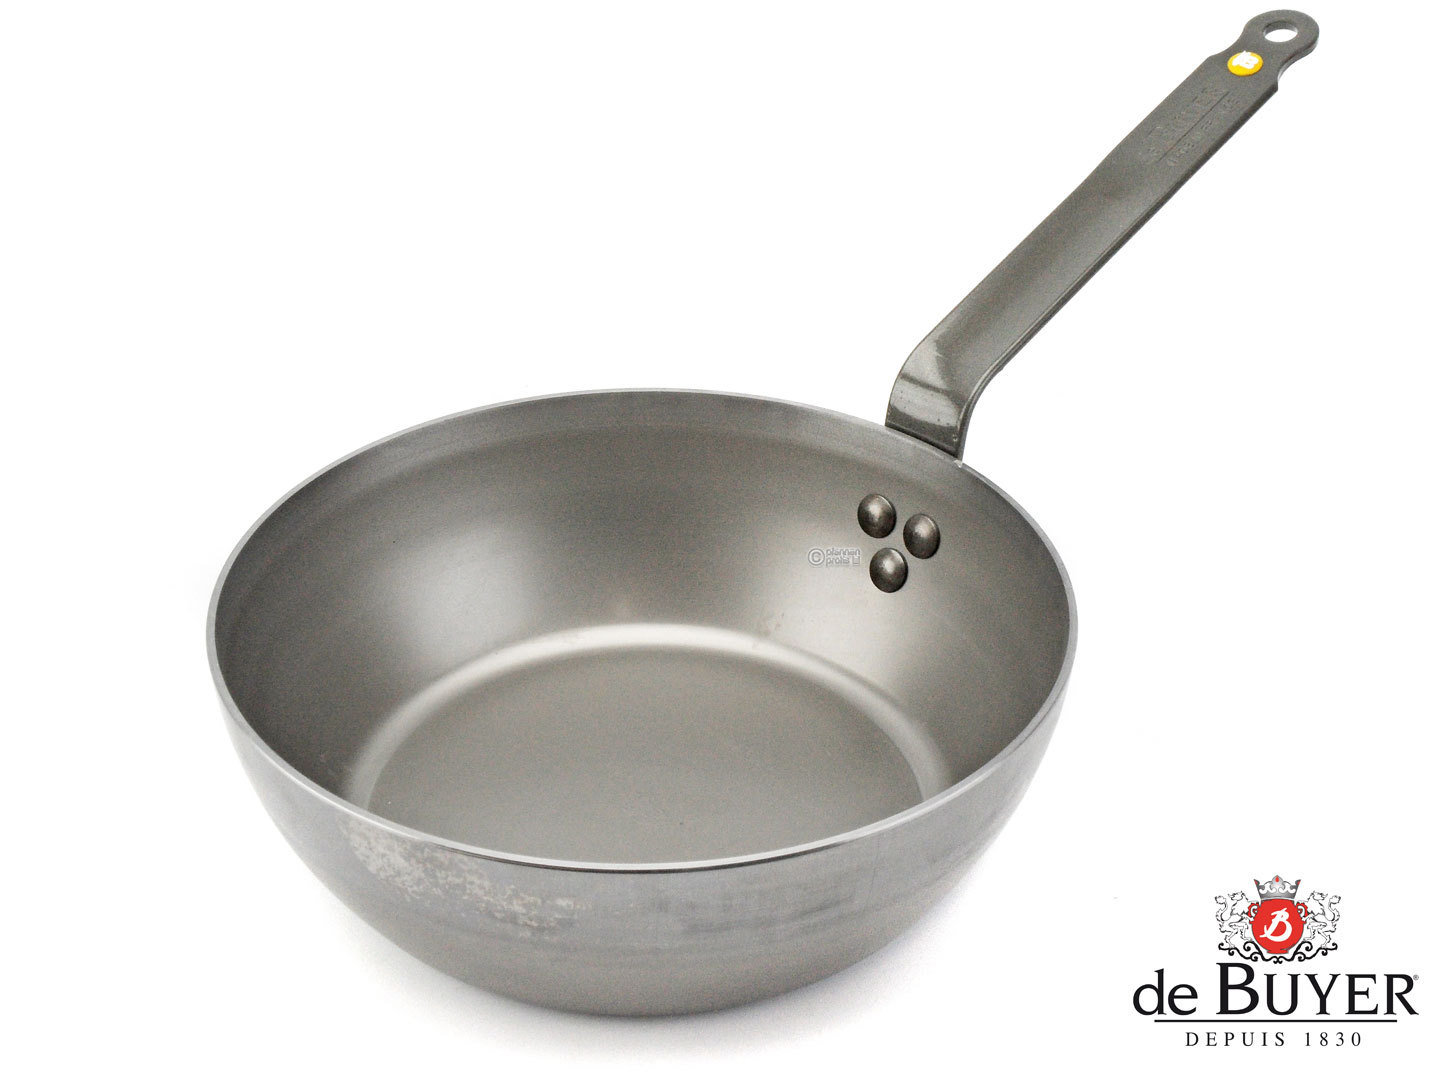 DE BUYER iron country pan MINERAL B ELEMENT 24 cm deep skillet